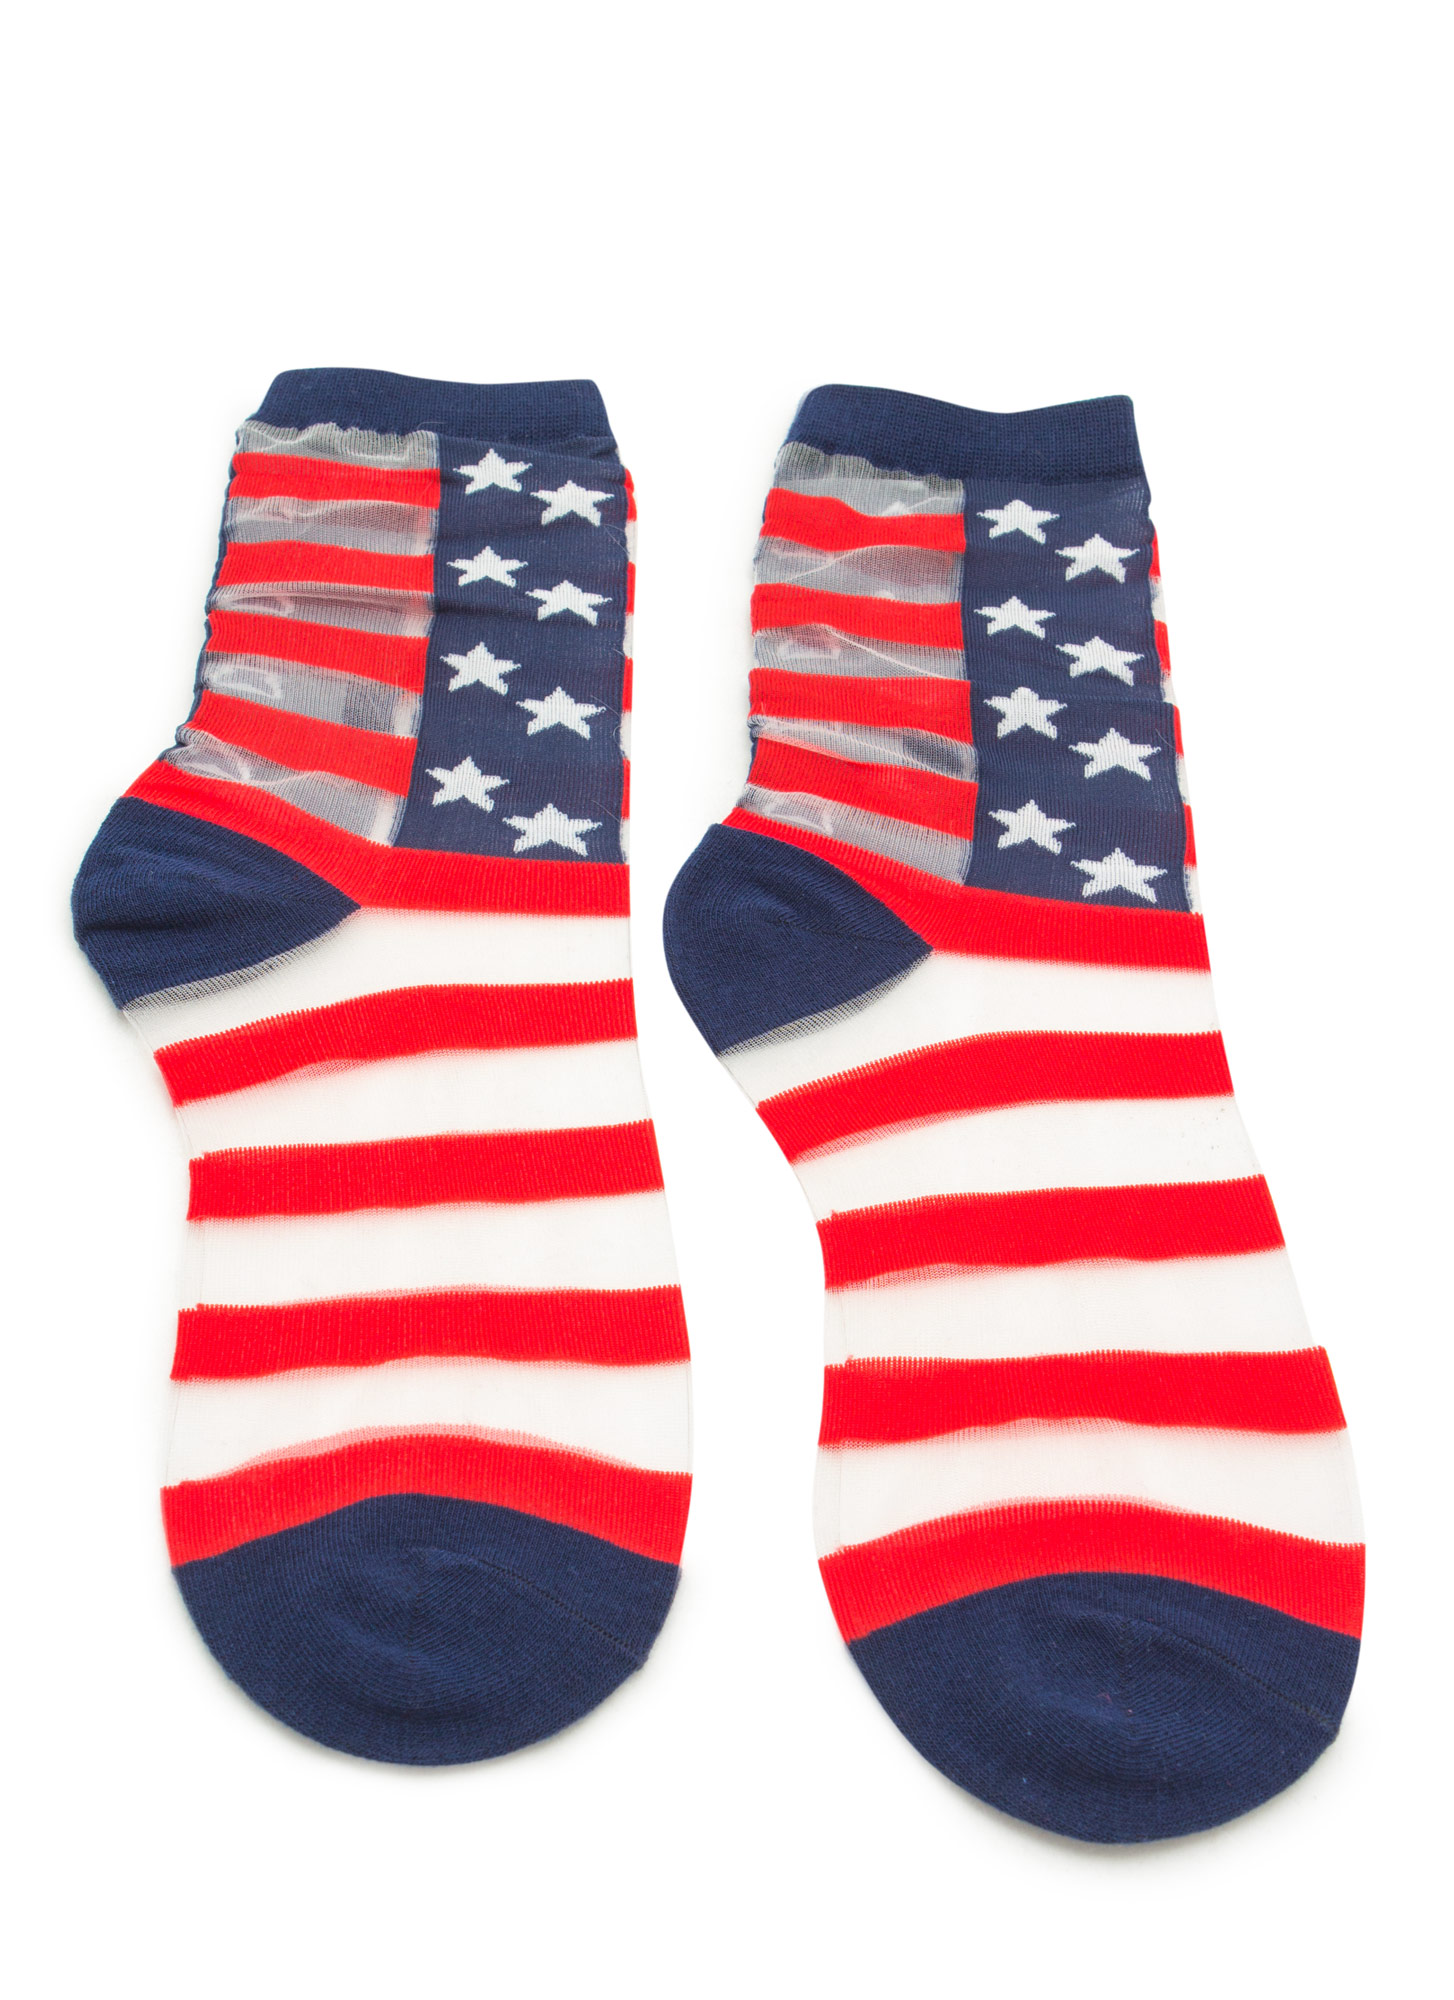 Sheer Striped Mesh American Flag Socks NAVYRED